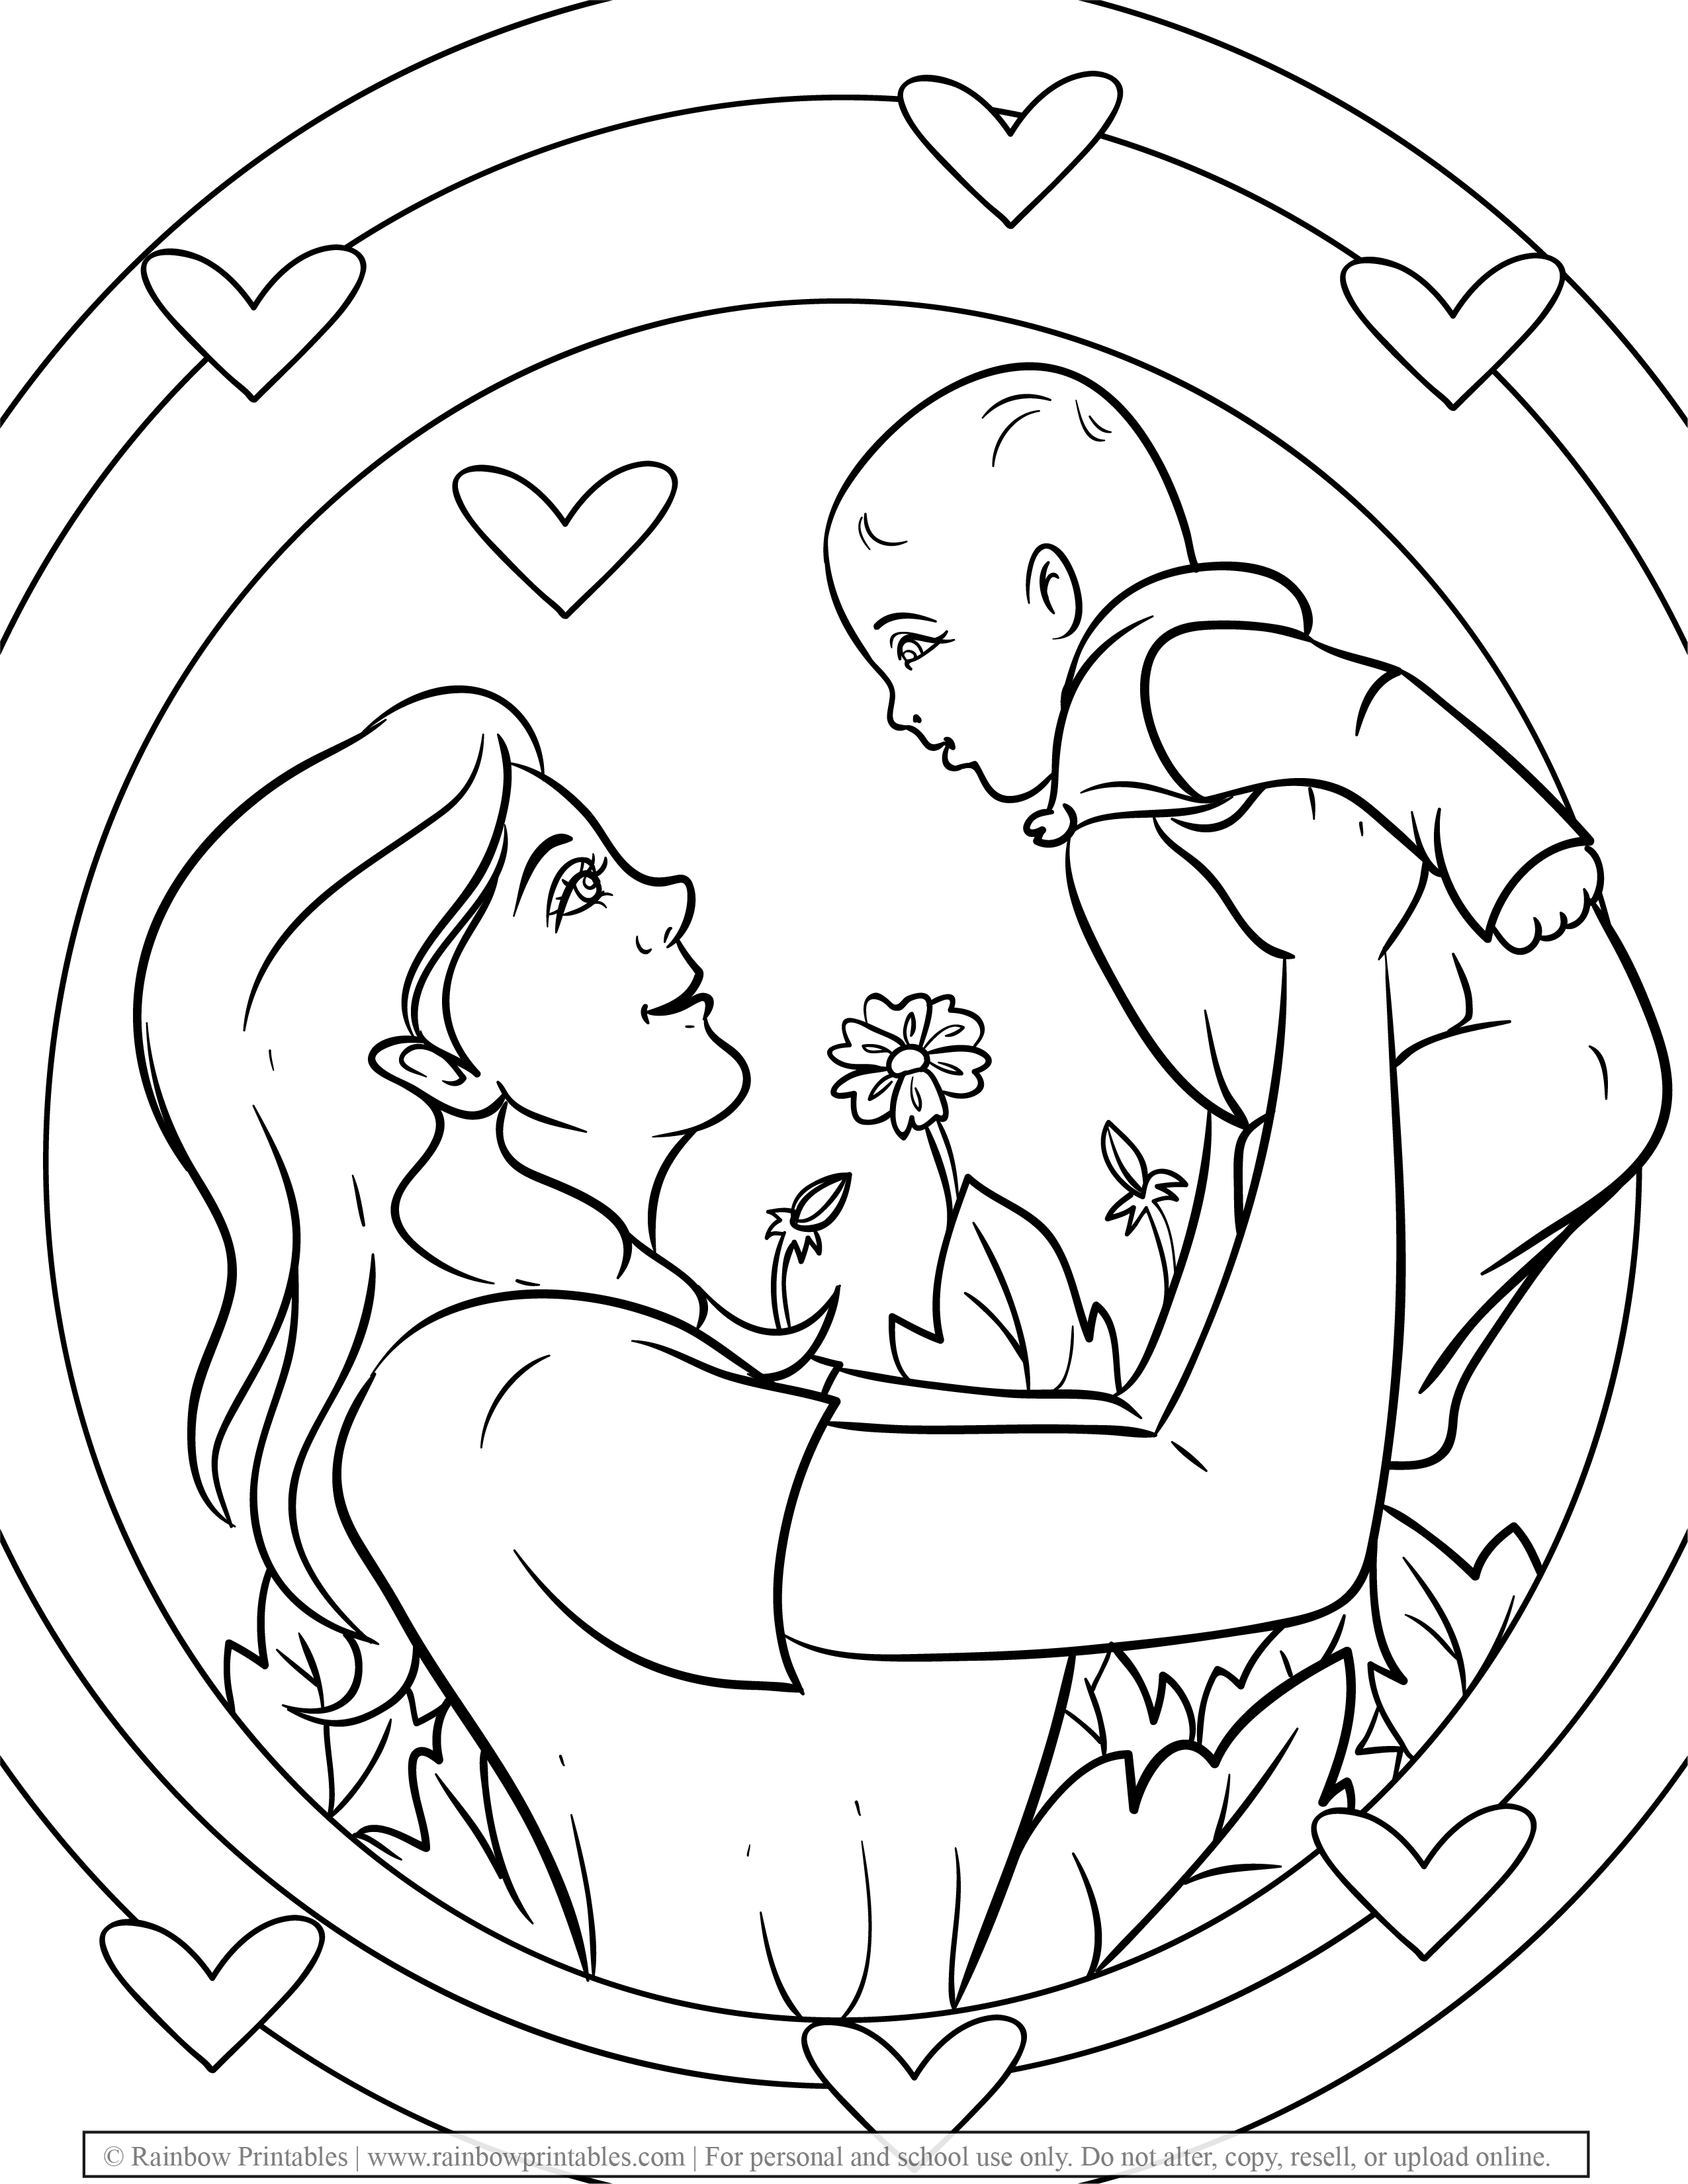 Free Coloring Pages for Kids Drawing Activities Line Art Illustration MOM and Infant Baby Love Flowers Happy MOTHER'S DAY